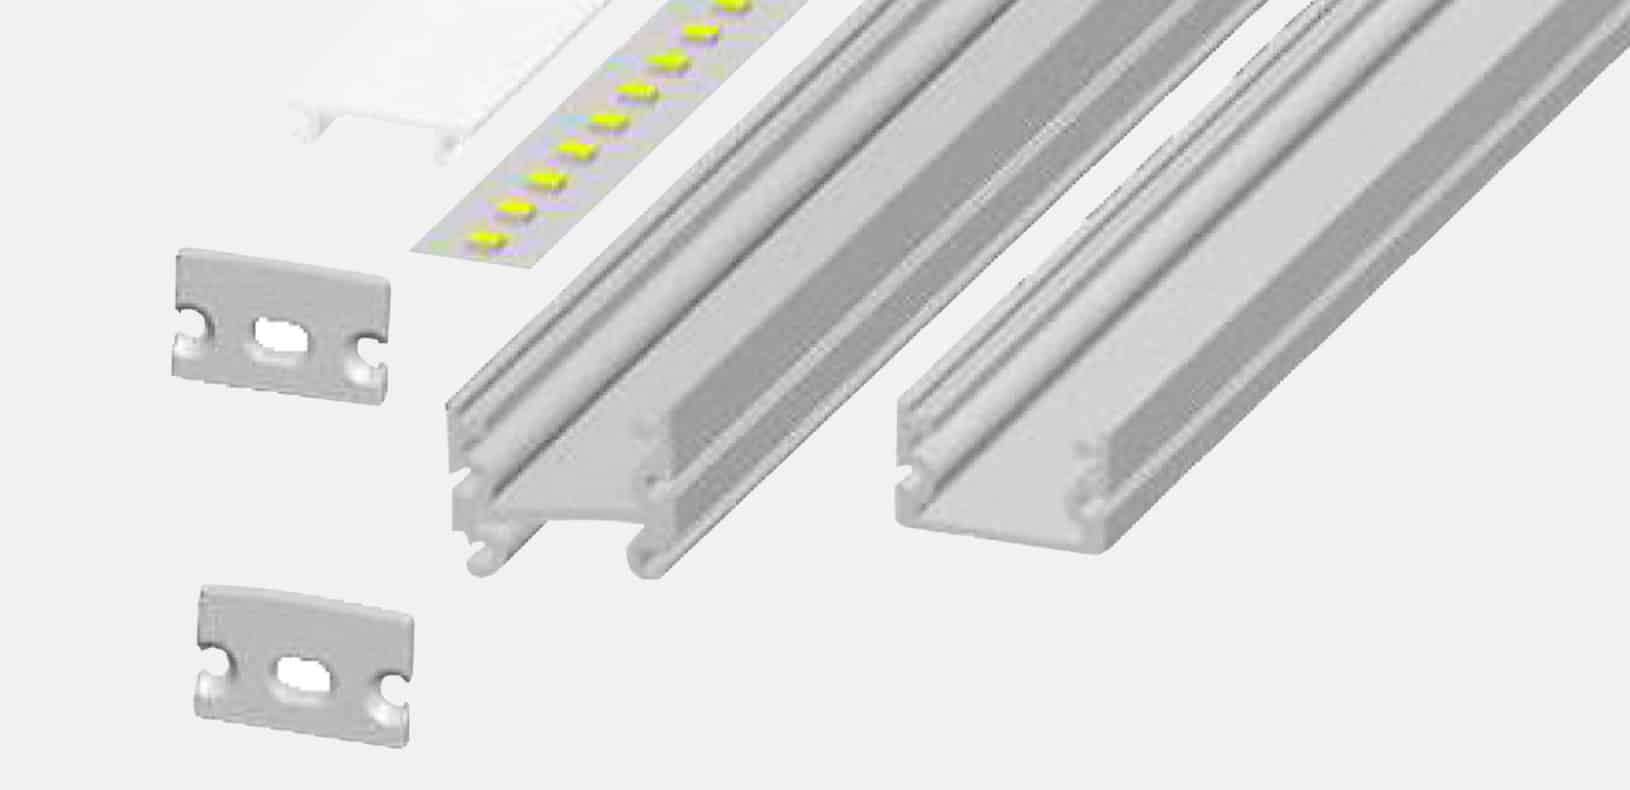 LED Aluminium Profile - Free Assemble LED Profile - LF2222